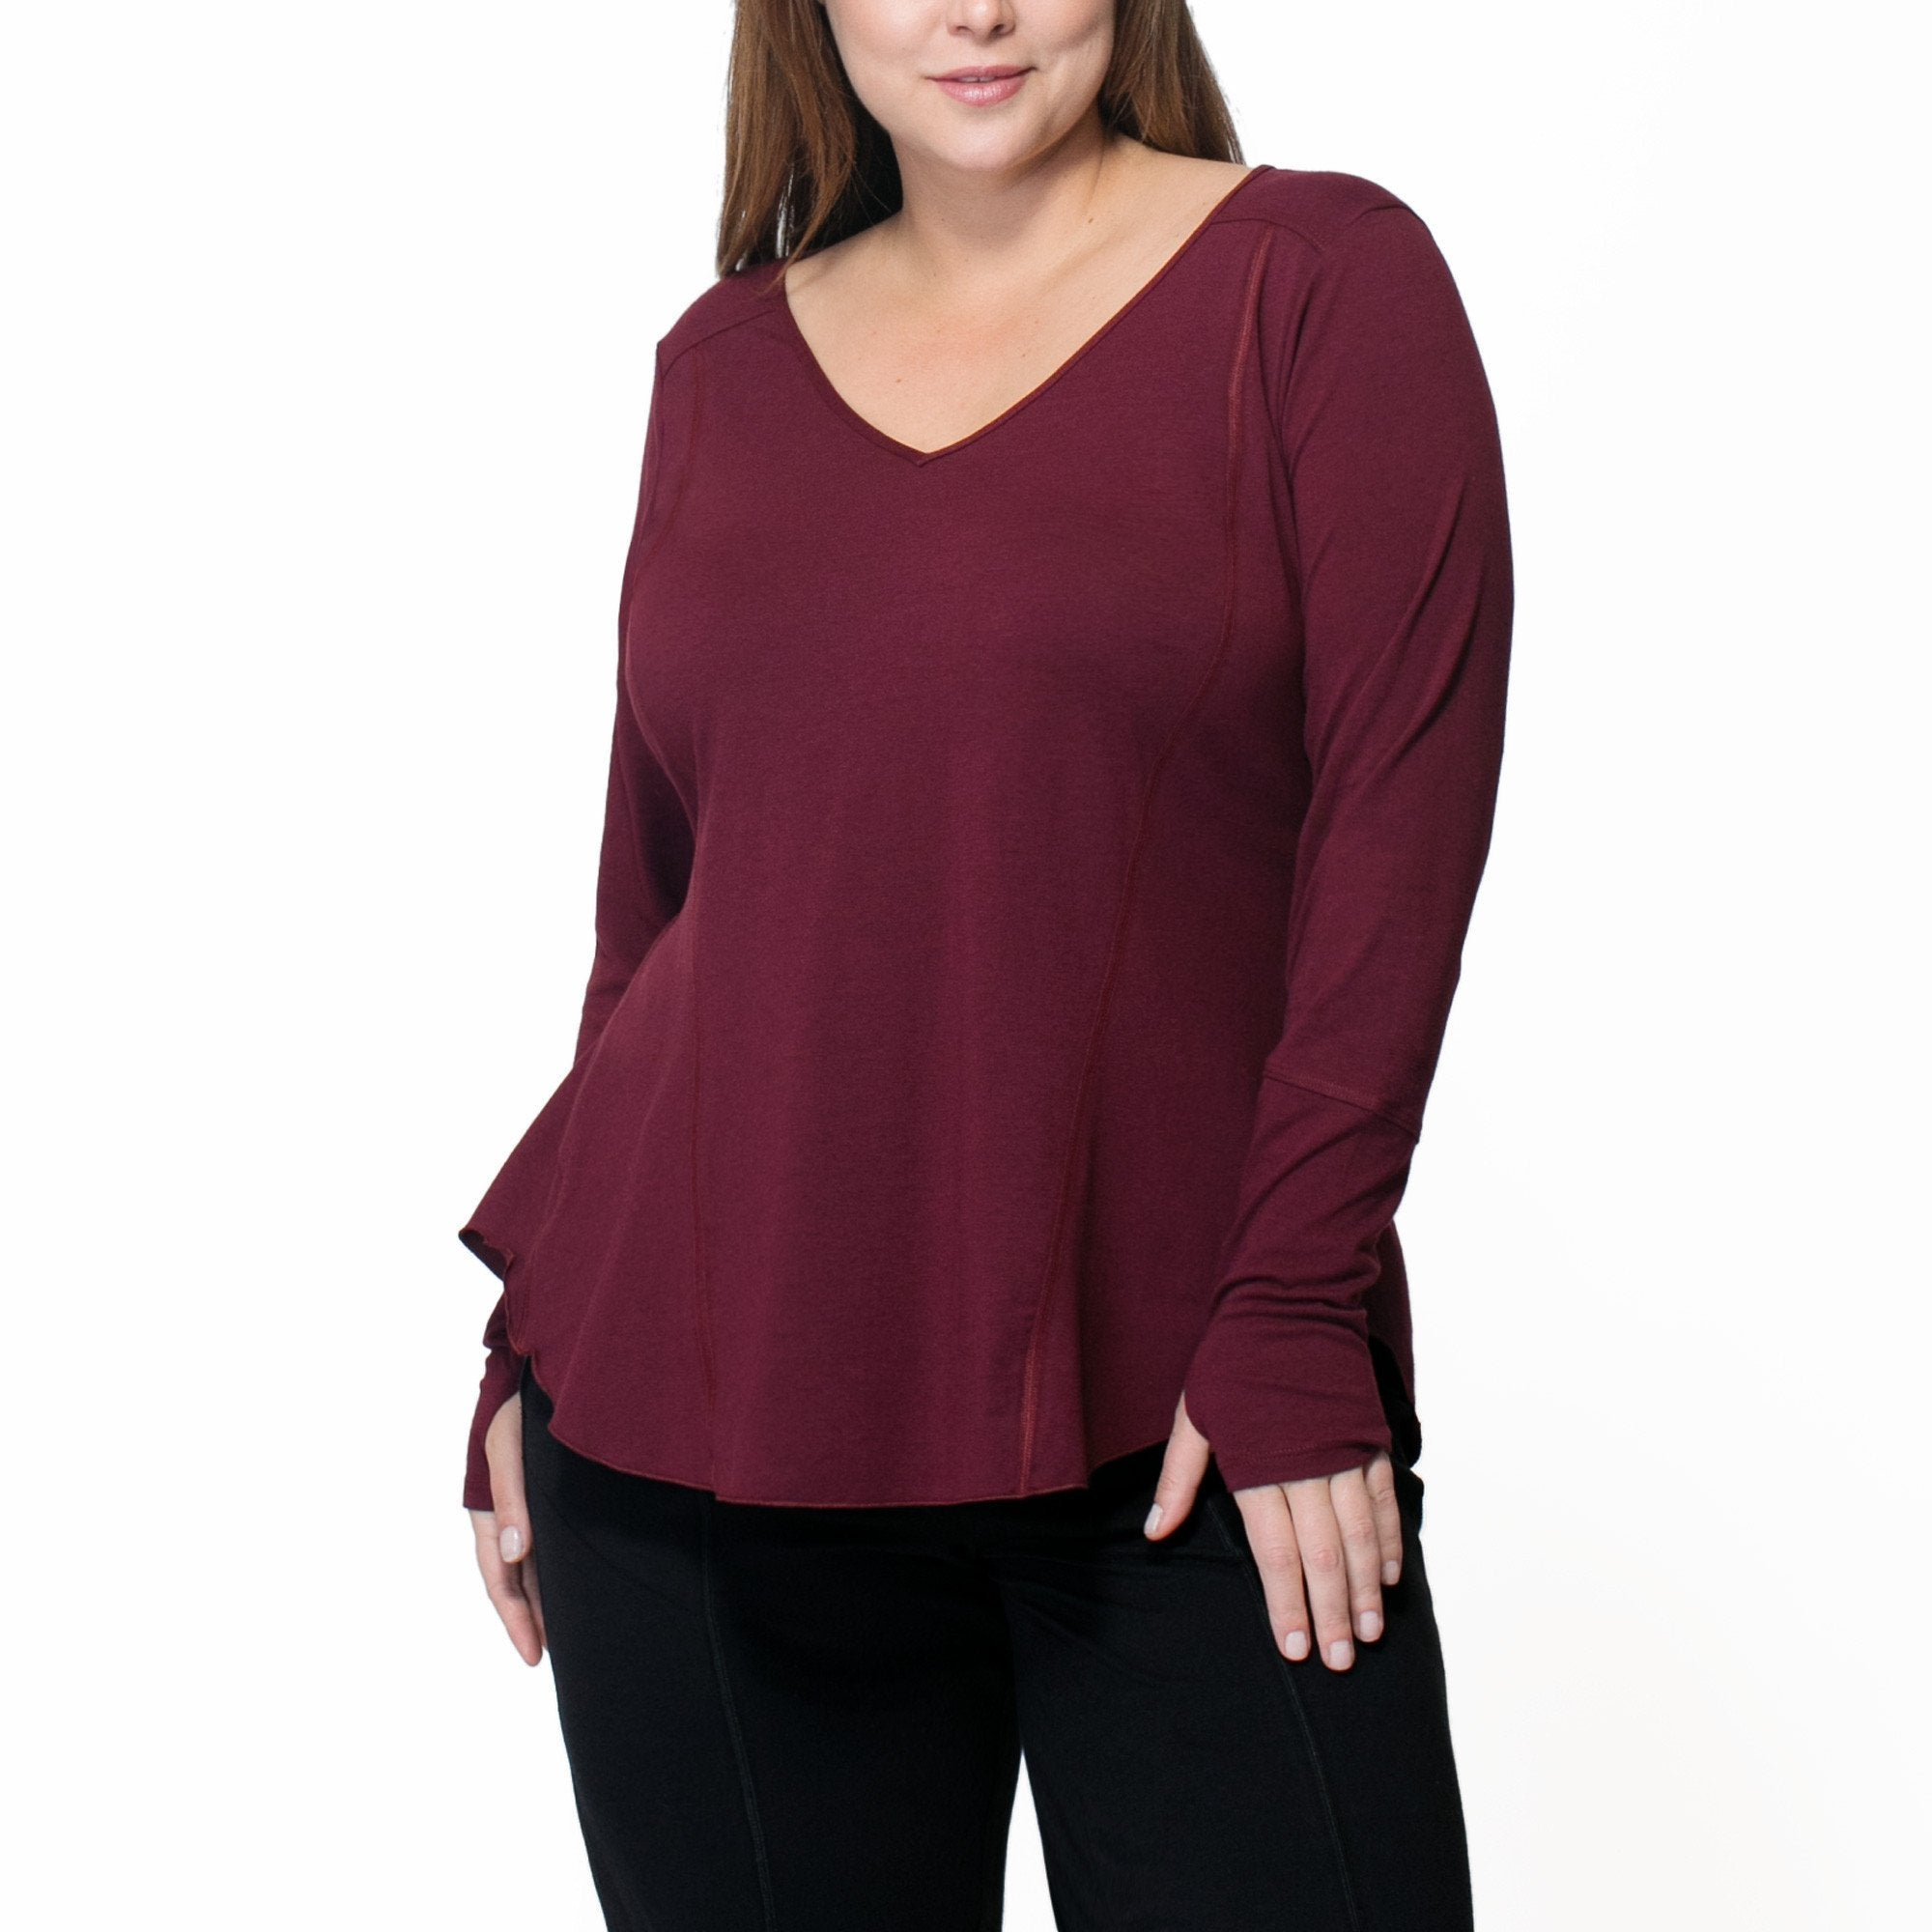 Fiona Long Sleeve - Rainbeau Curves, 14/16 / Elderberry, activewear, athleisure, fitness, workout, gym, performance, womens, ladies, plus size, curvy, full figured, spandex, cotton, polyester - 1